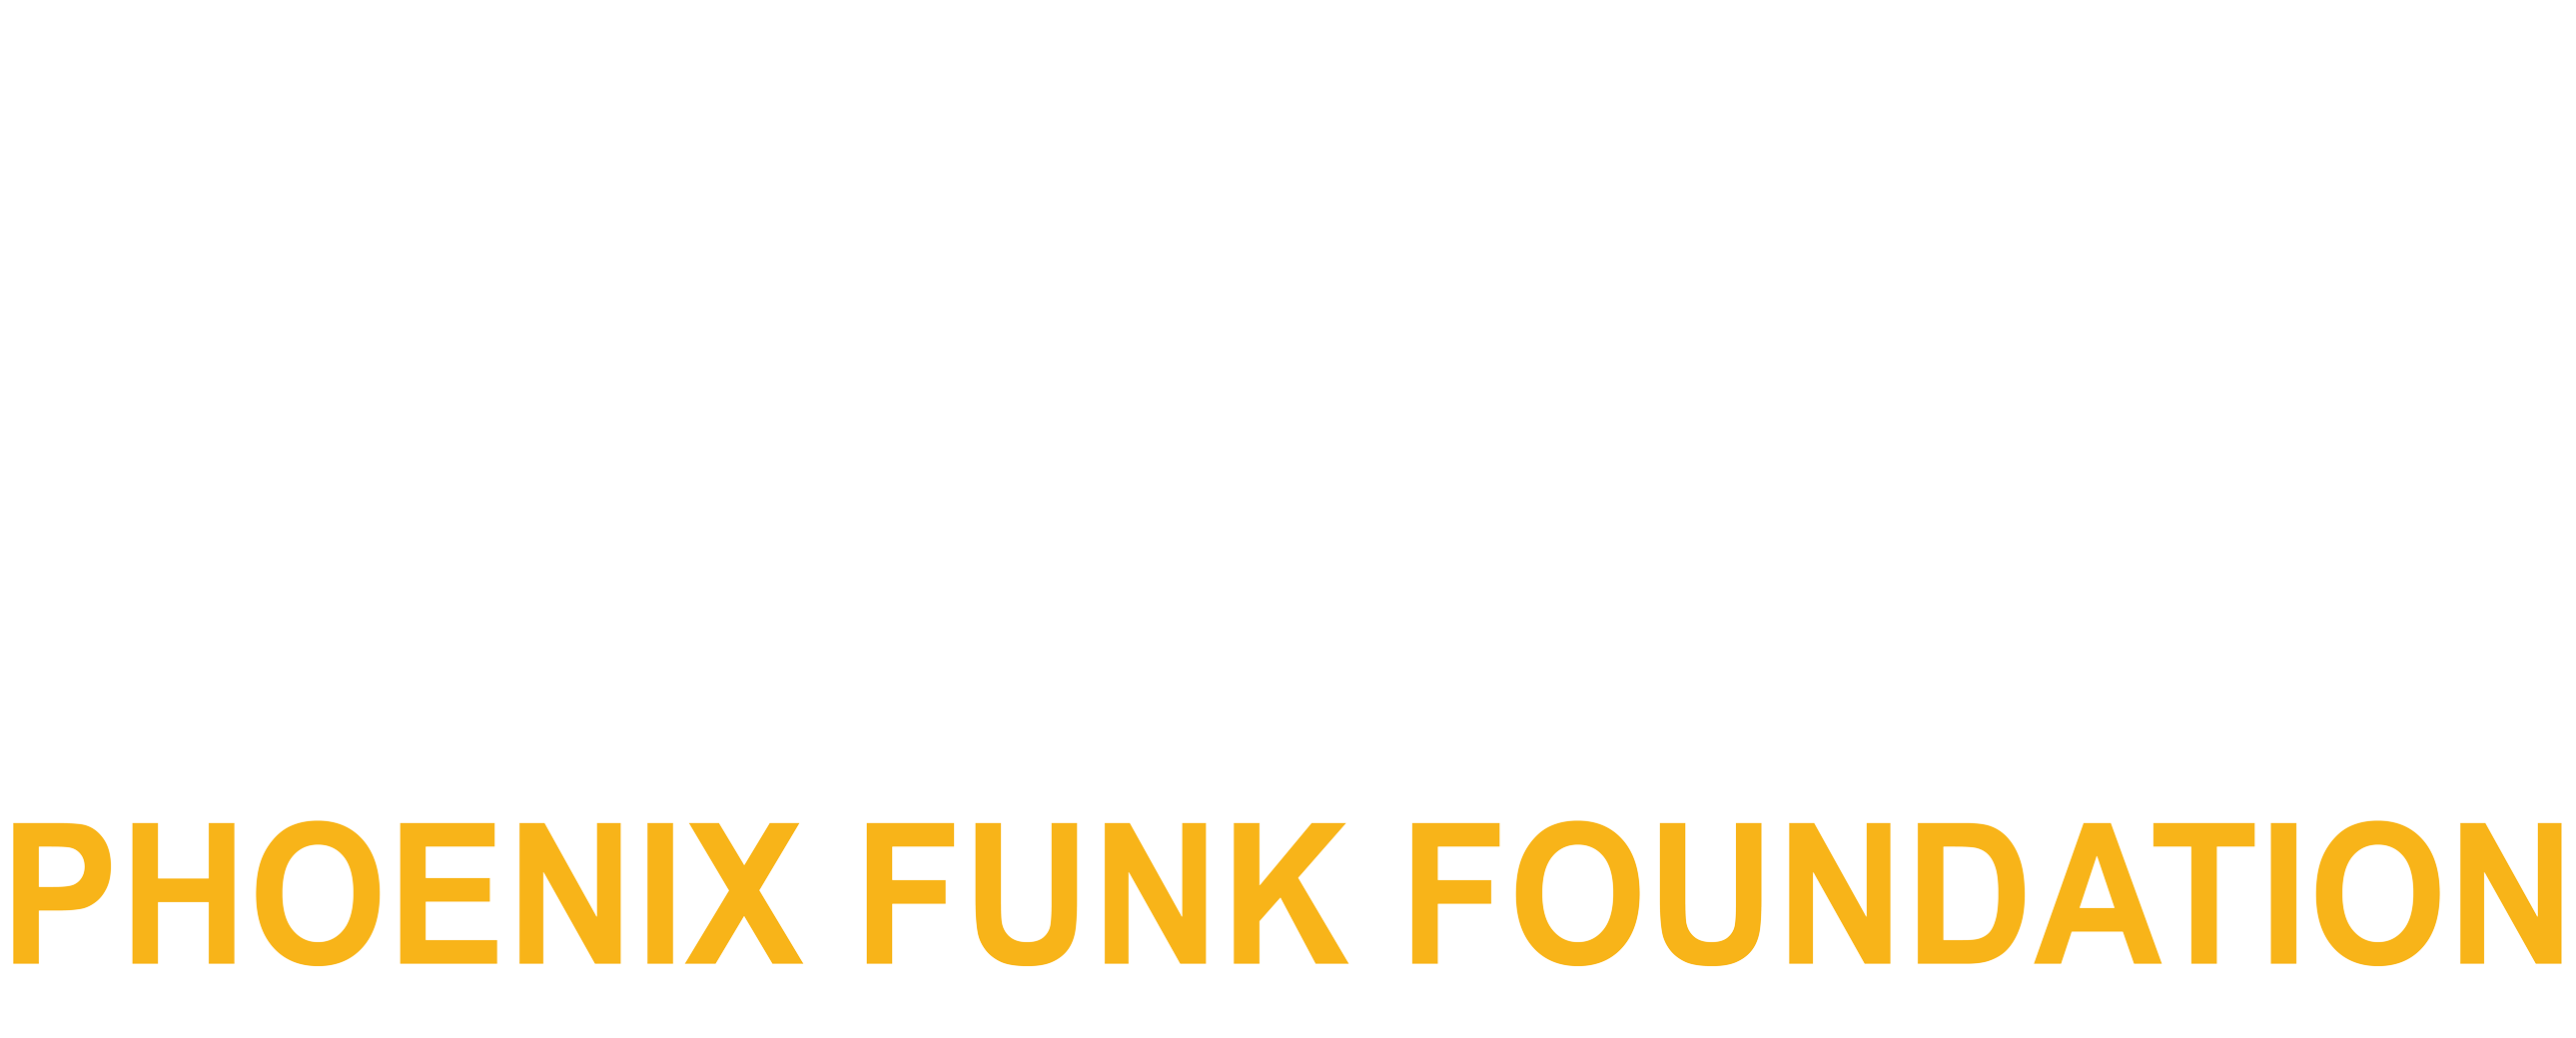 Phoenix Funk Foundation